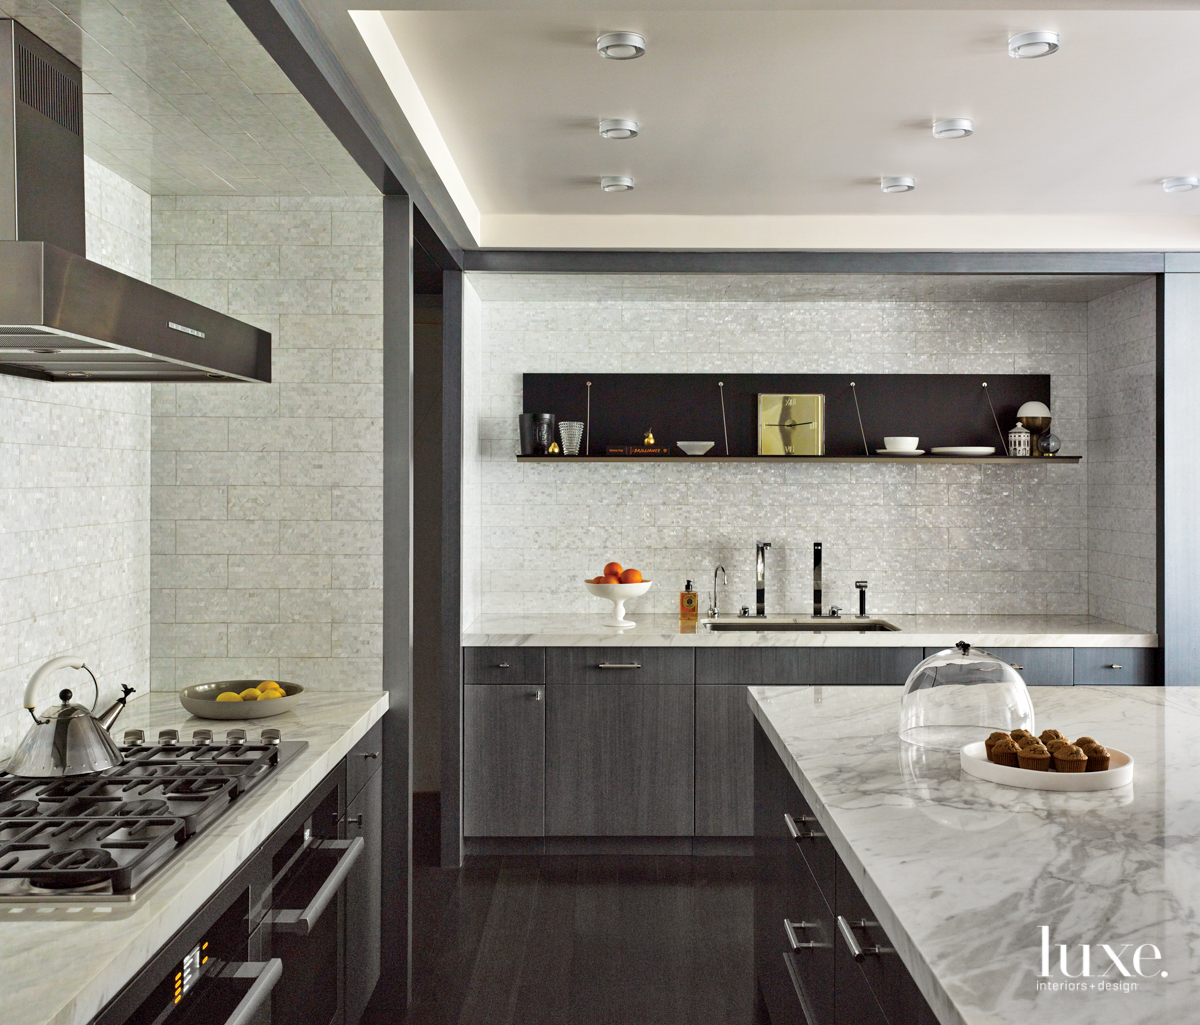 Jonathan Arnold created the cabinetry...